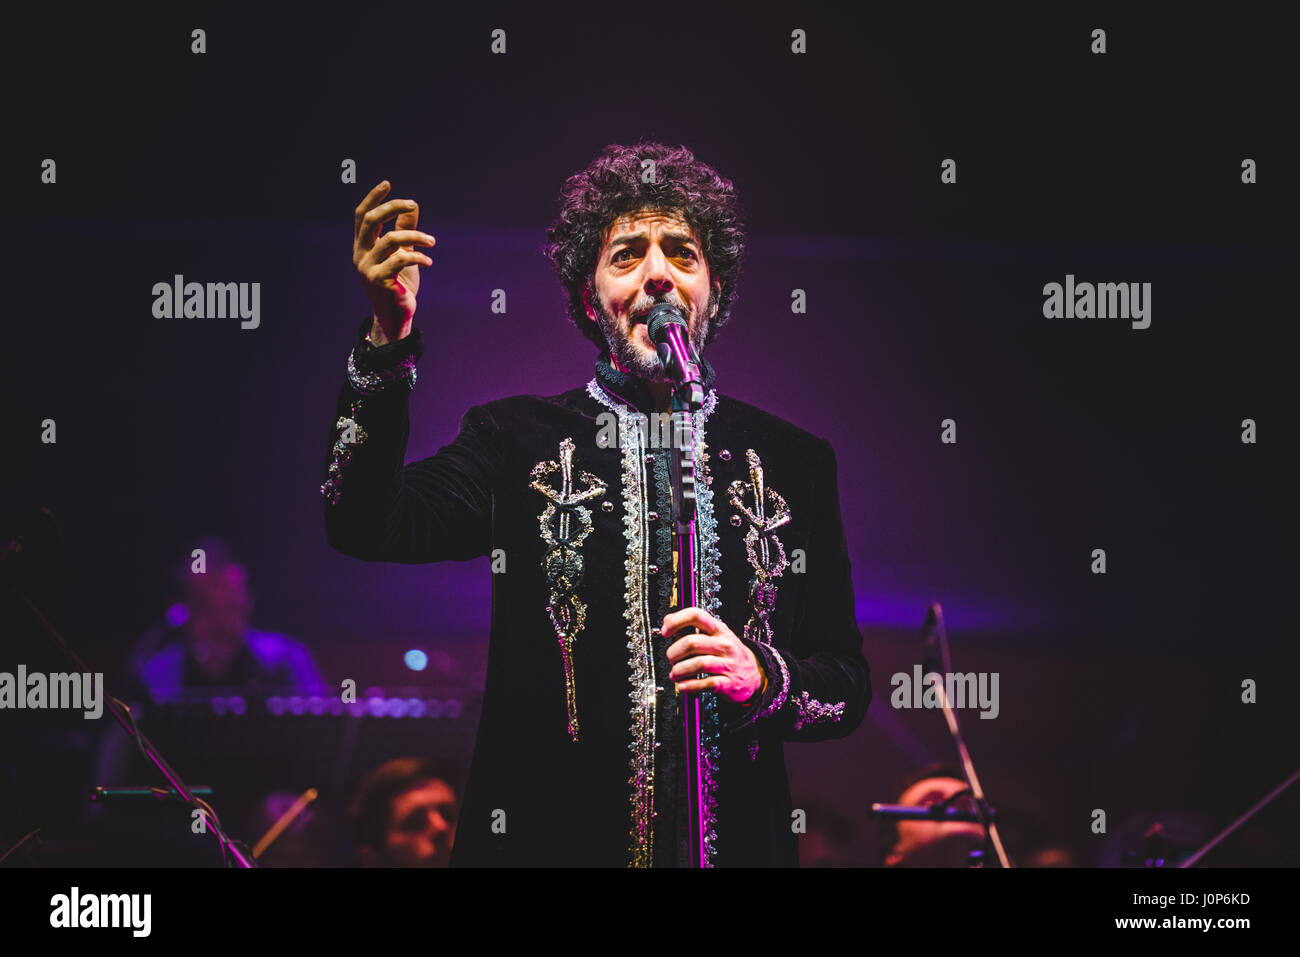 """Turin, Italy. 14th Apr, 2017. Max GazzŽ performed at the Auditorium Lingotto for his """"Alchemaya"""" tour concert. Credit: Stock Photo"""